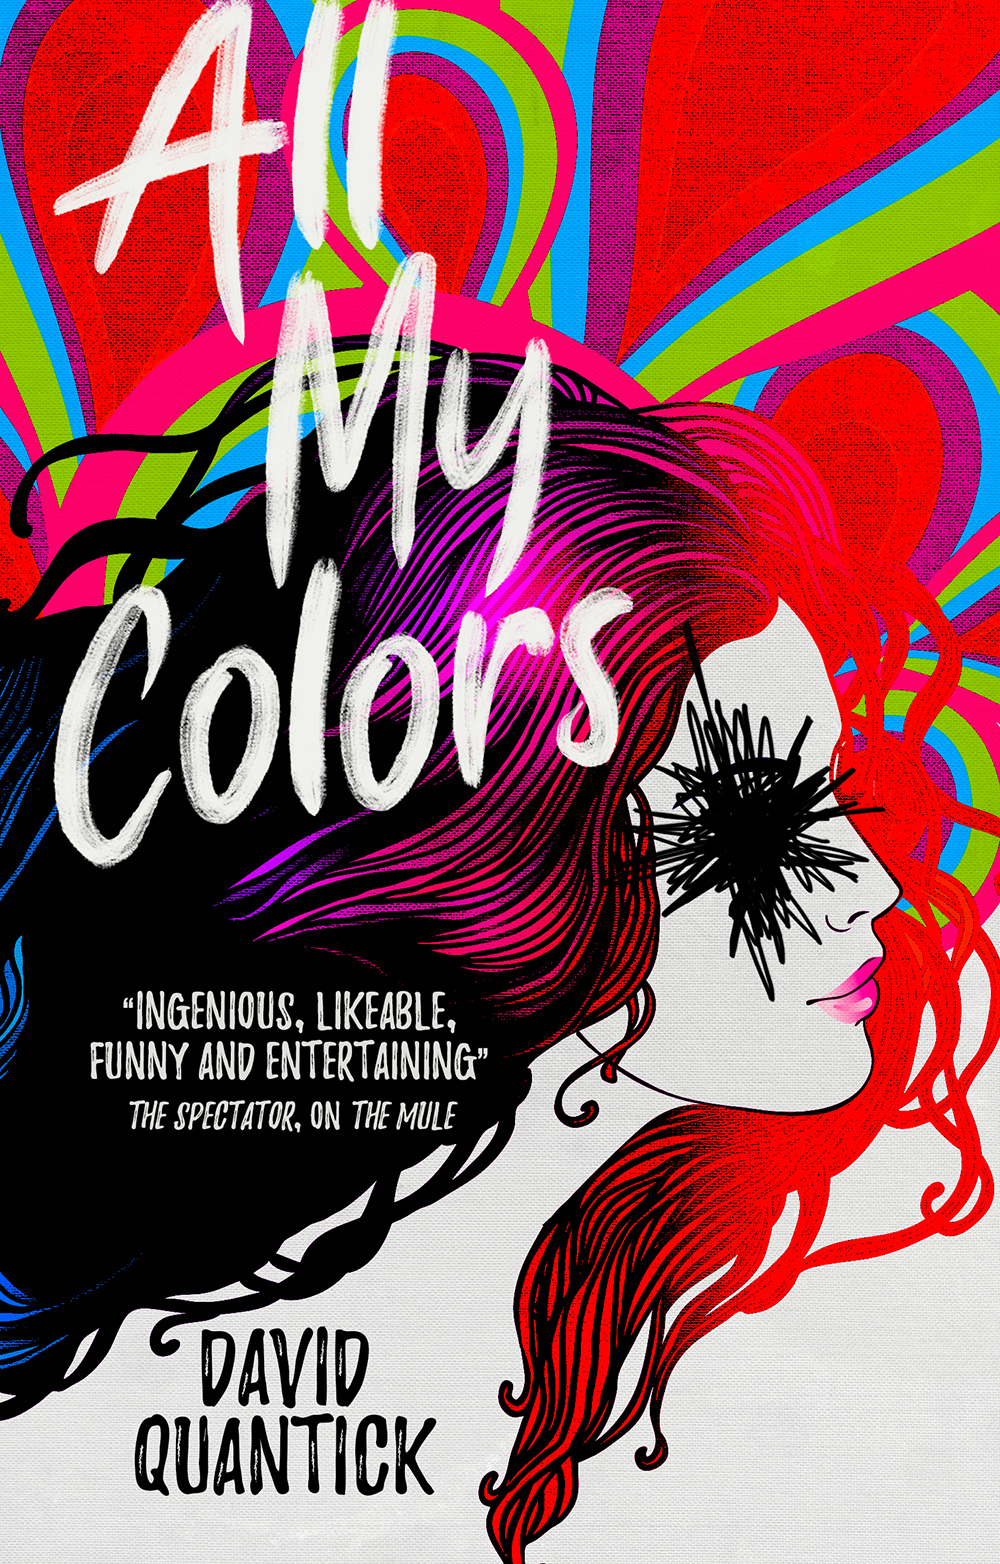 A Writer's Rollercoaster Nightmare in <i>All My Colors</i>